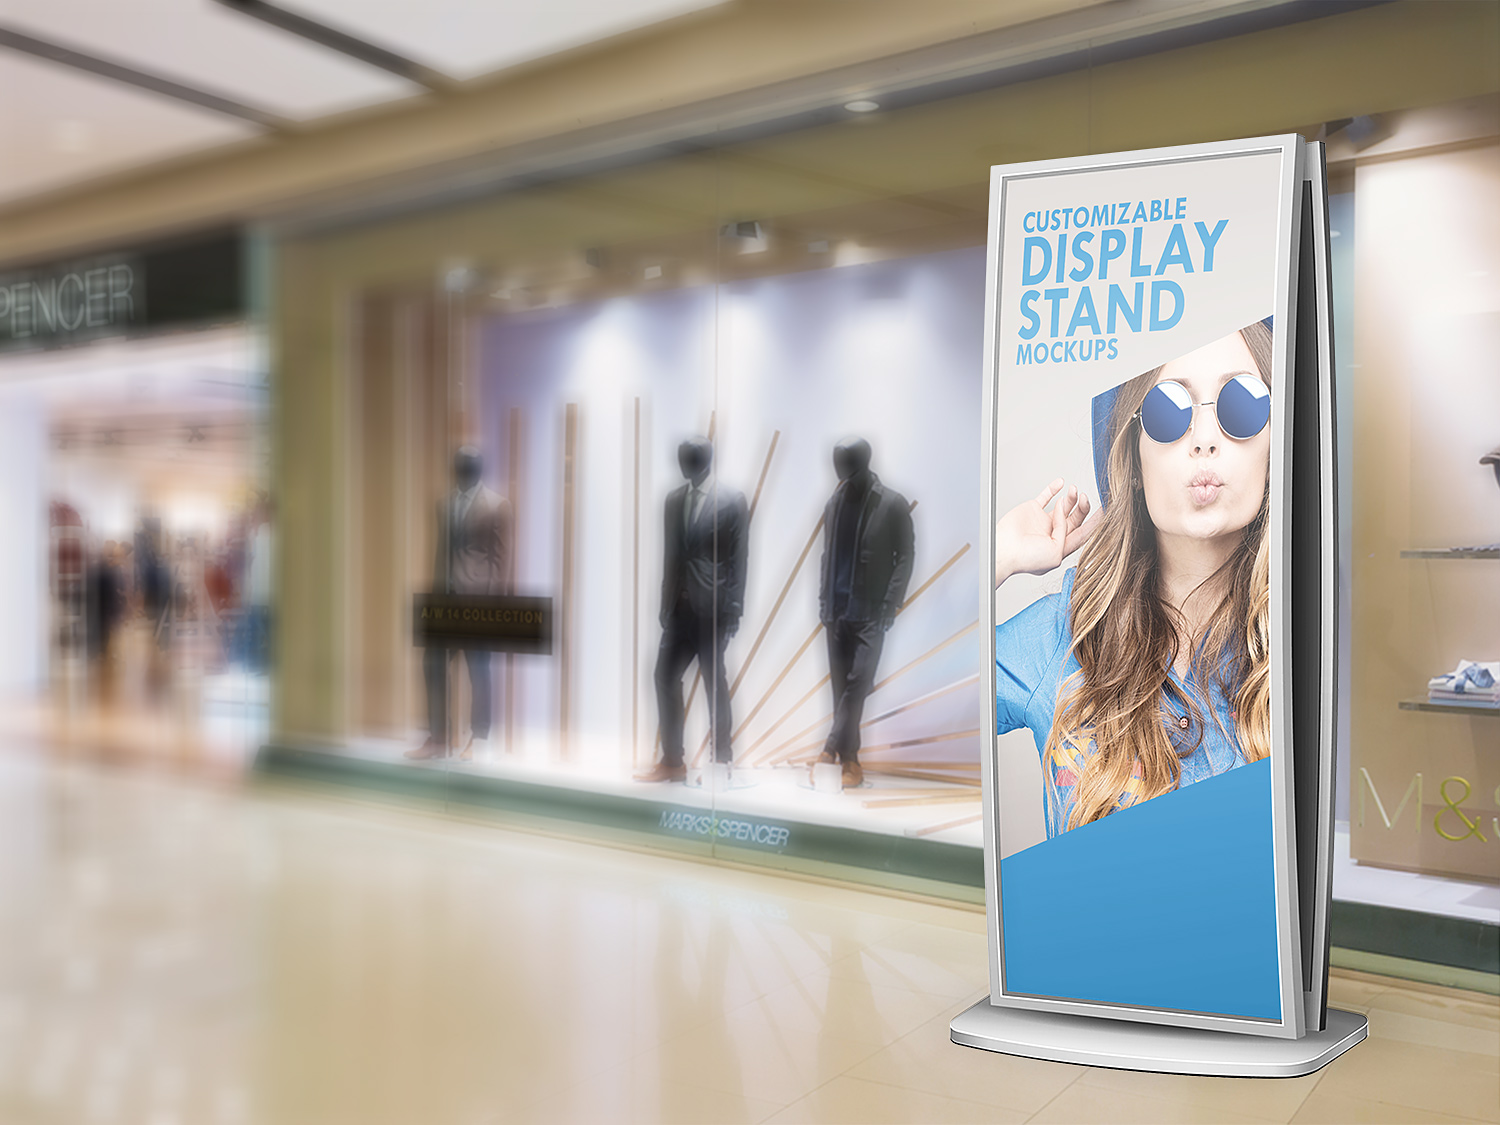 Stand-Display-Sign-Mockup-06